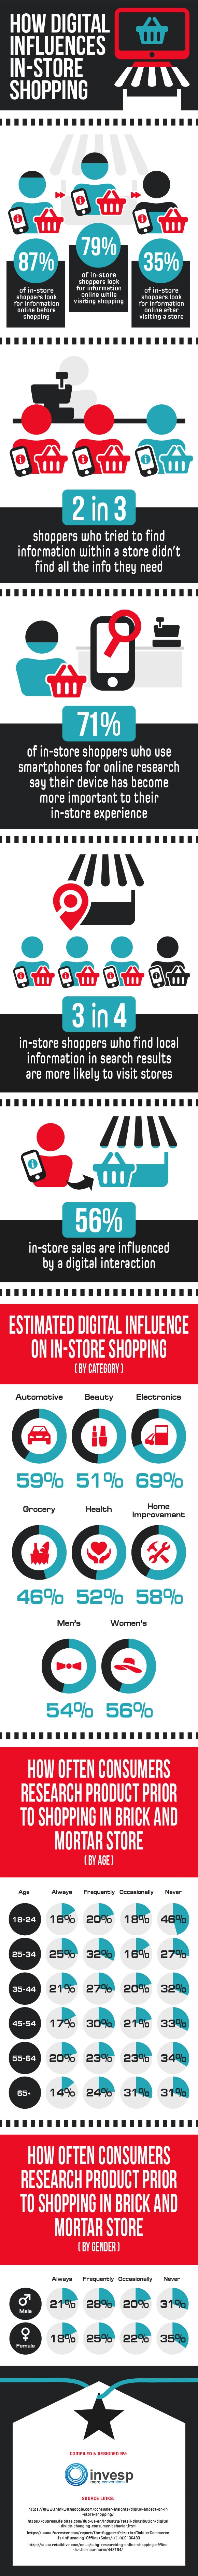 How digital influences in-store shopping | DeviceDaily.com